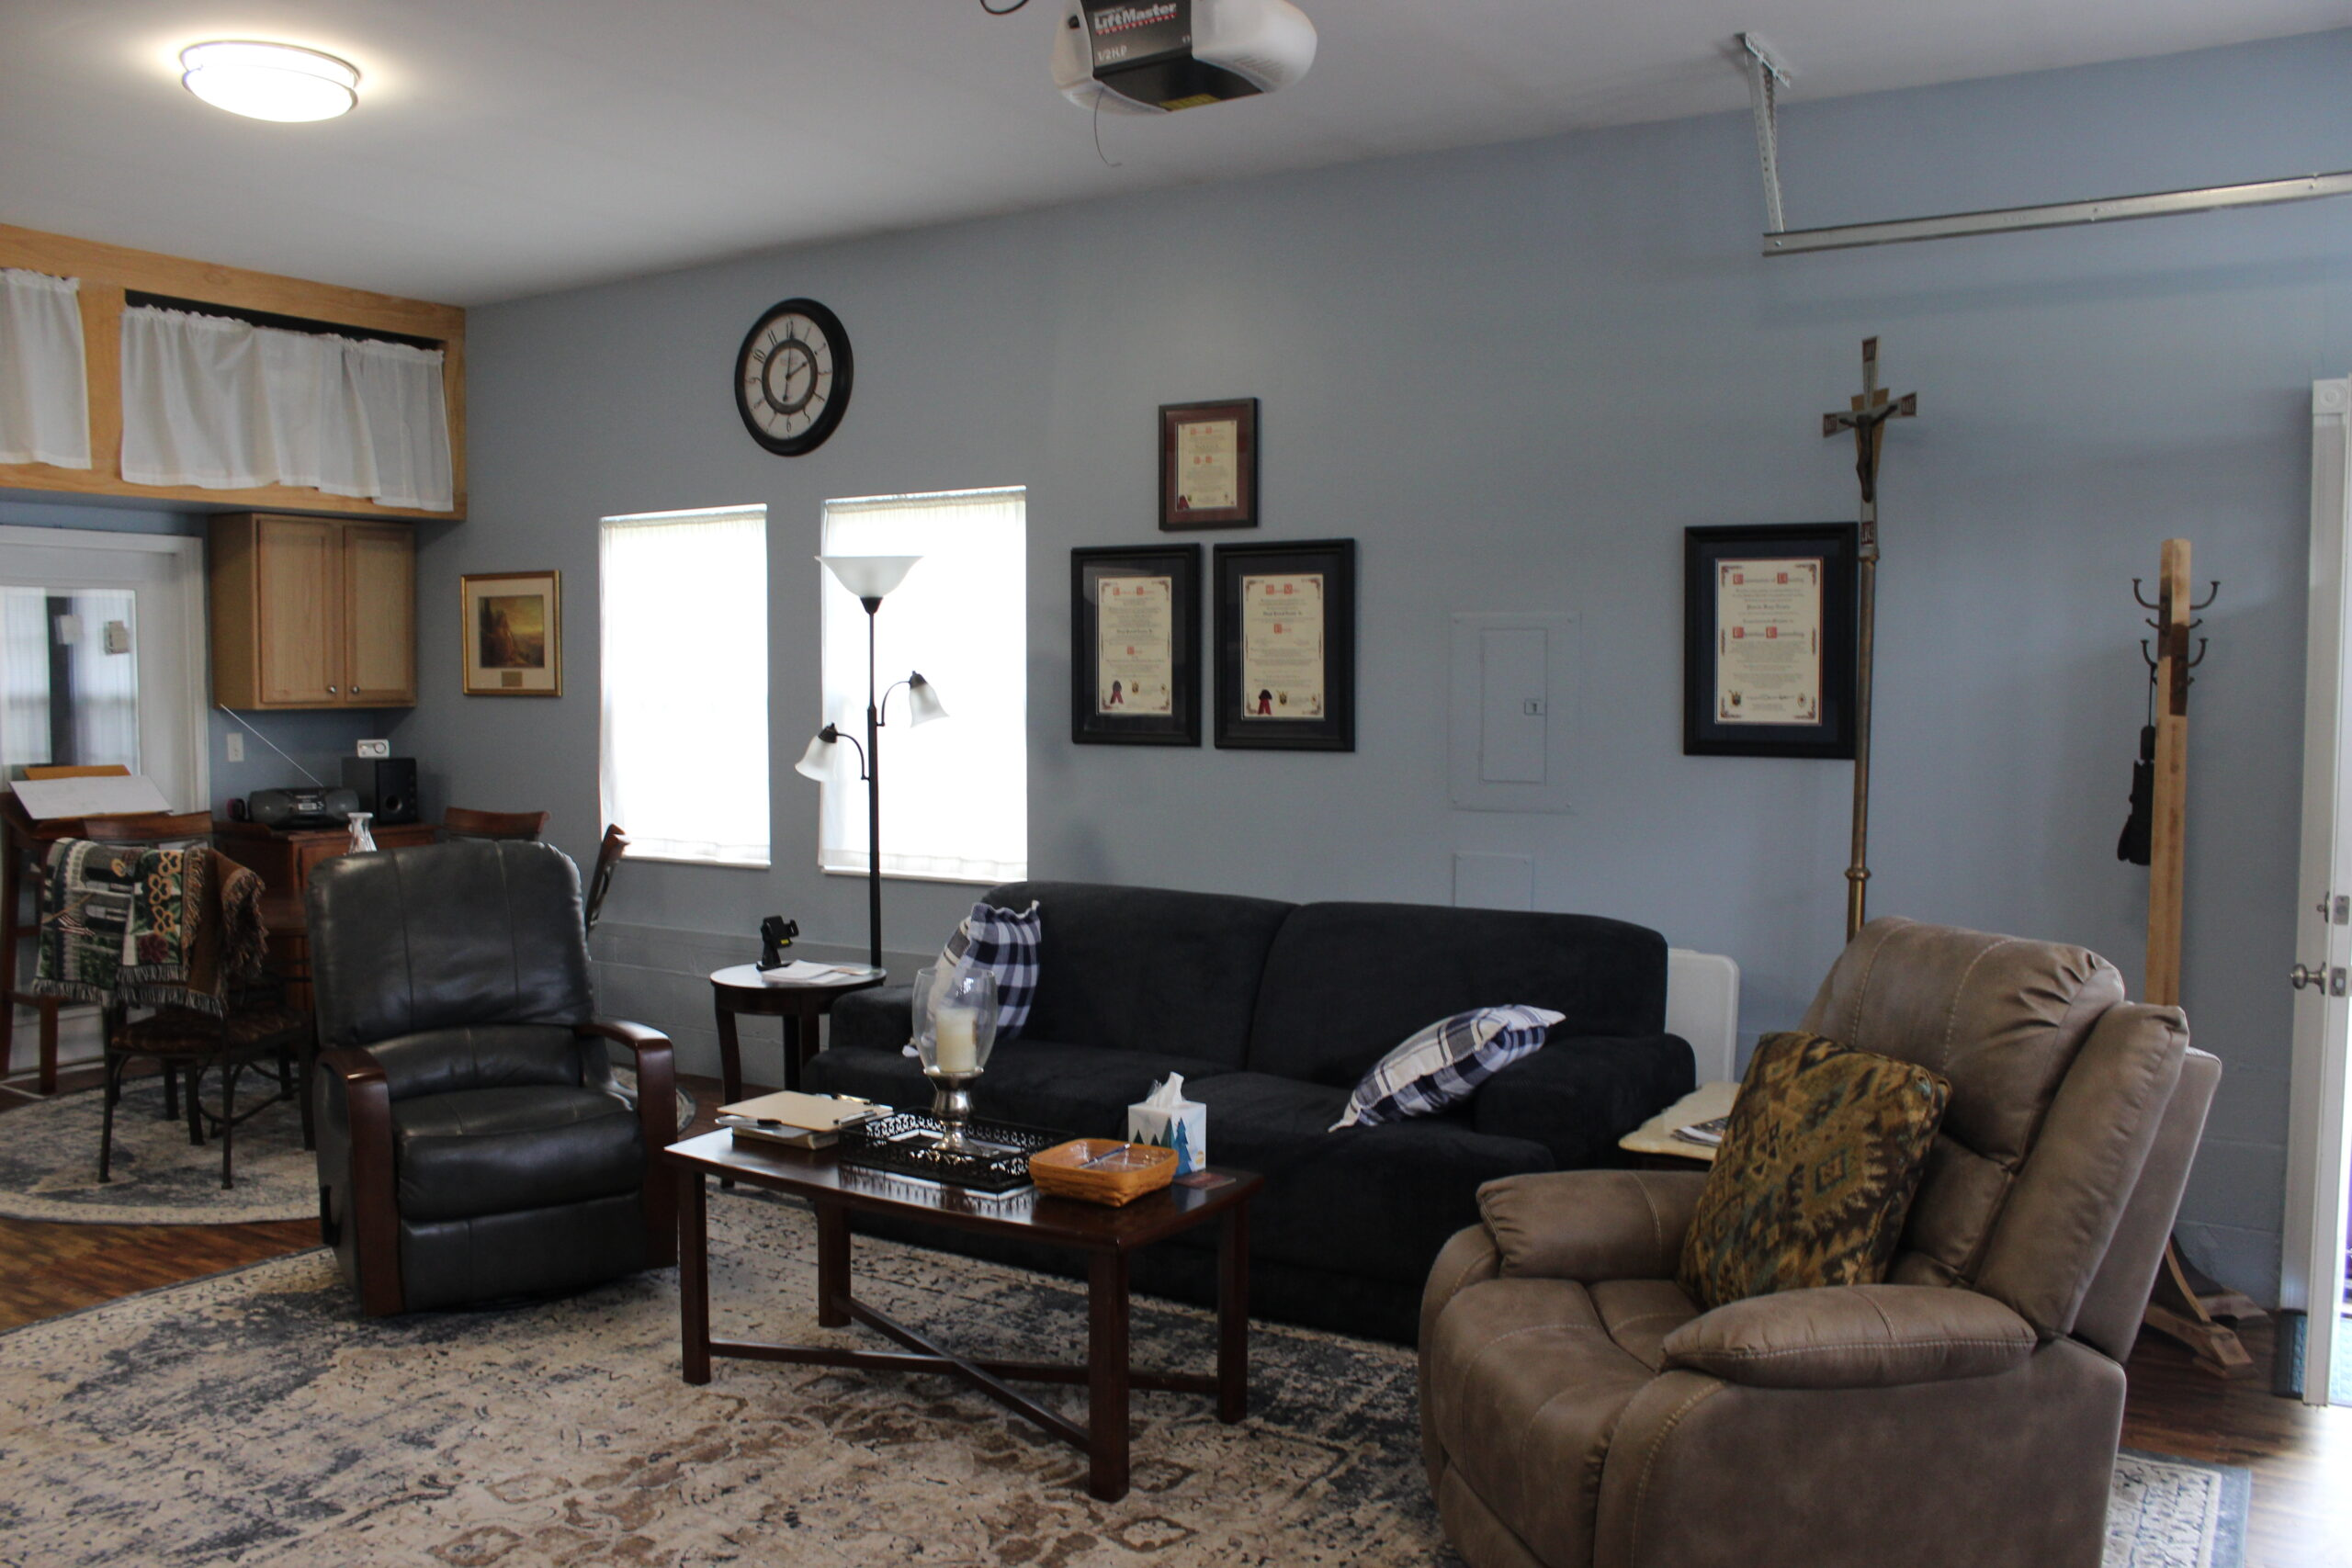 Knoxville Christian Counseling Private Office